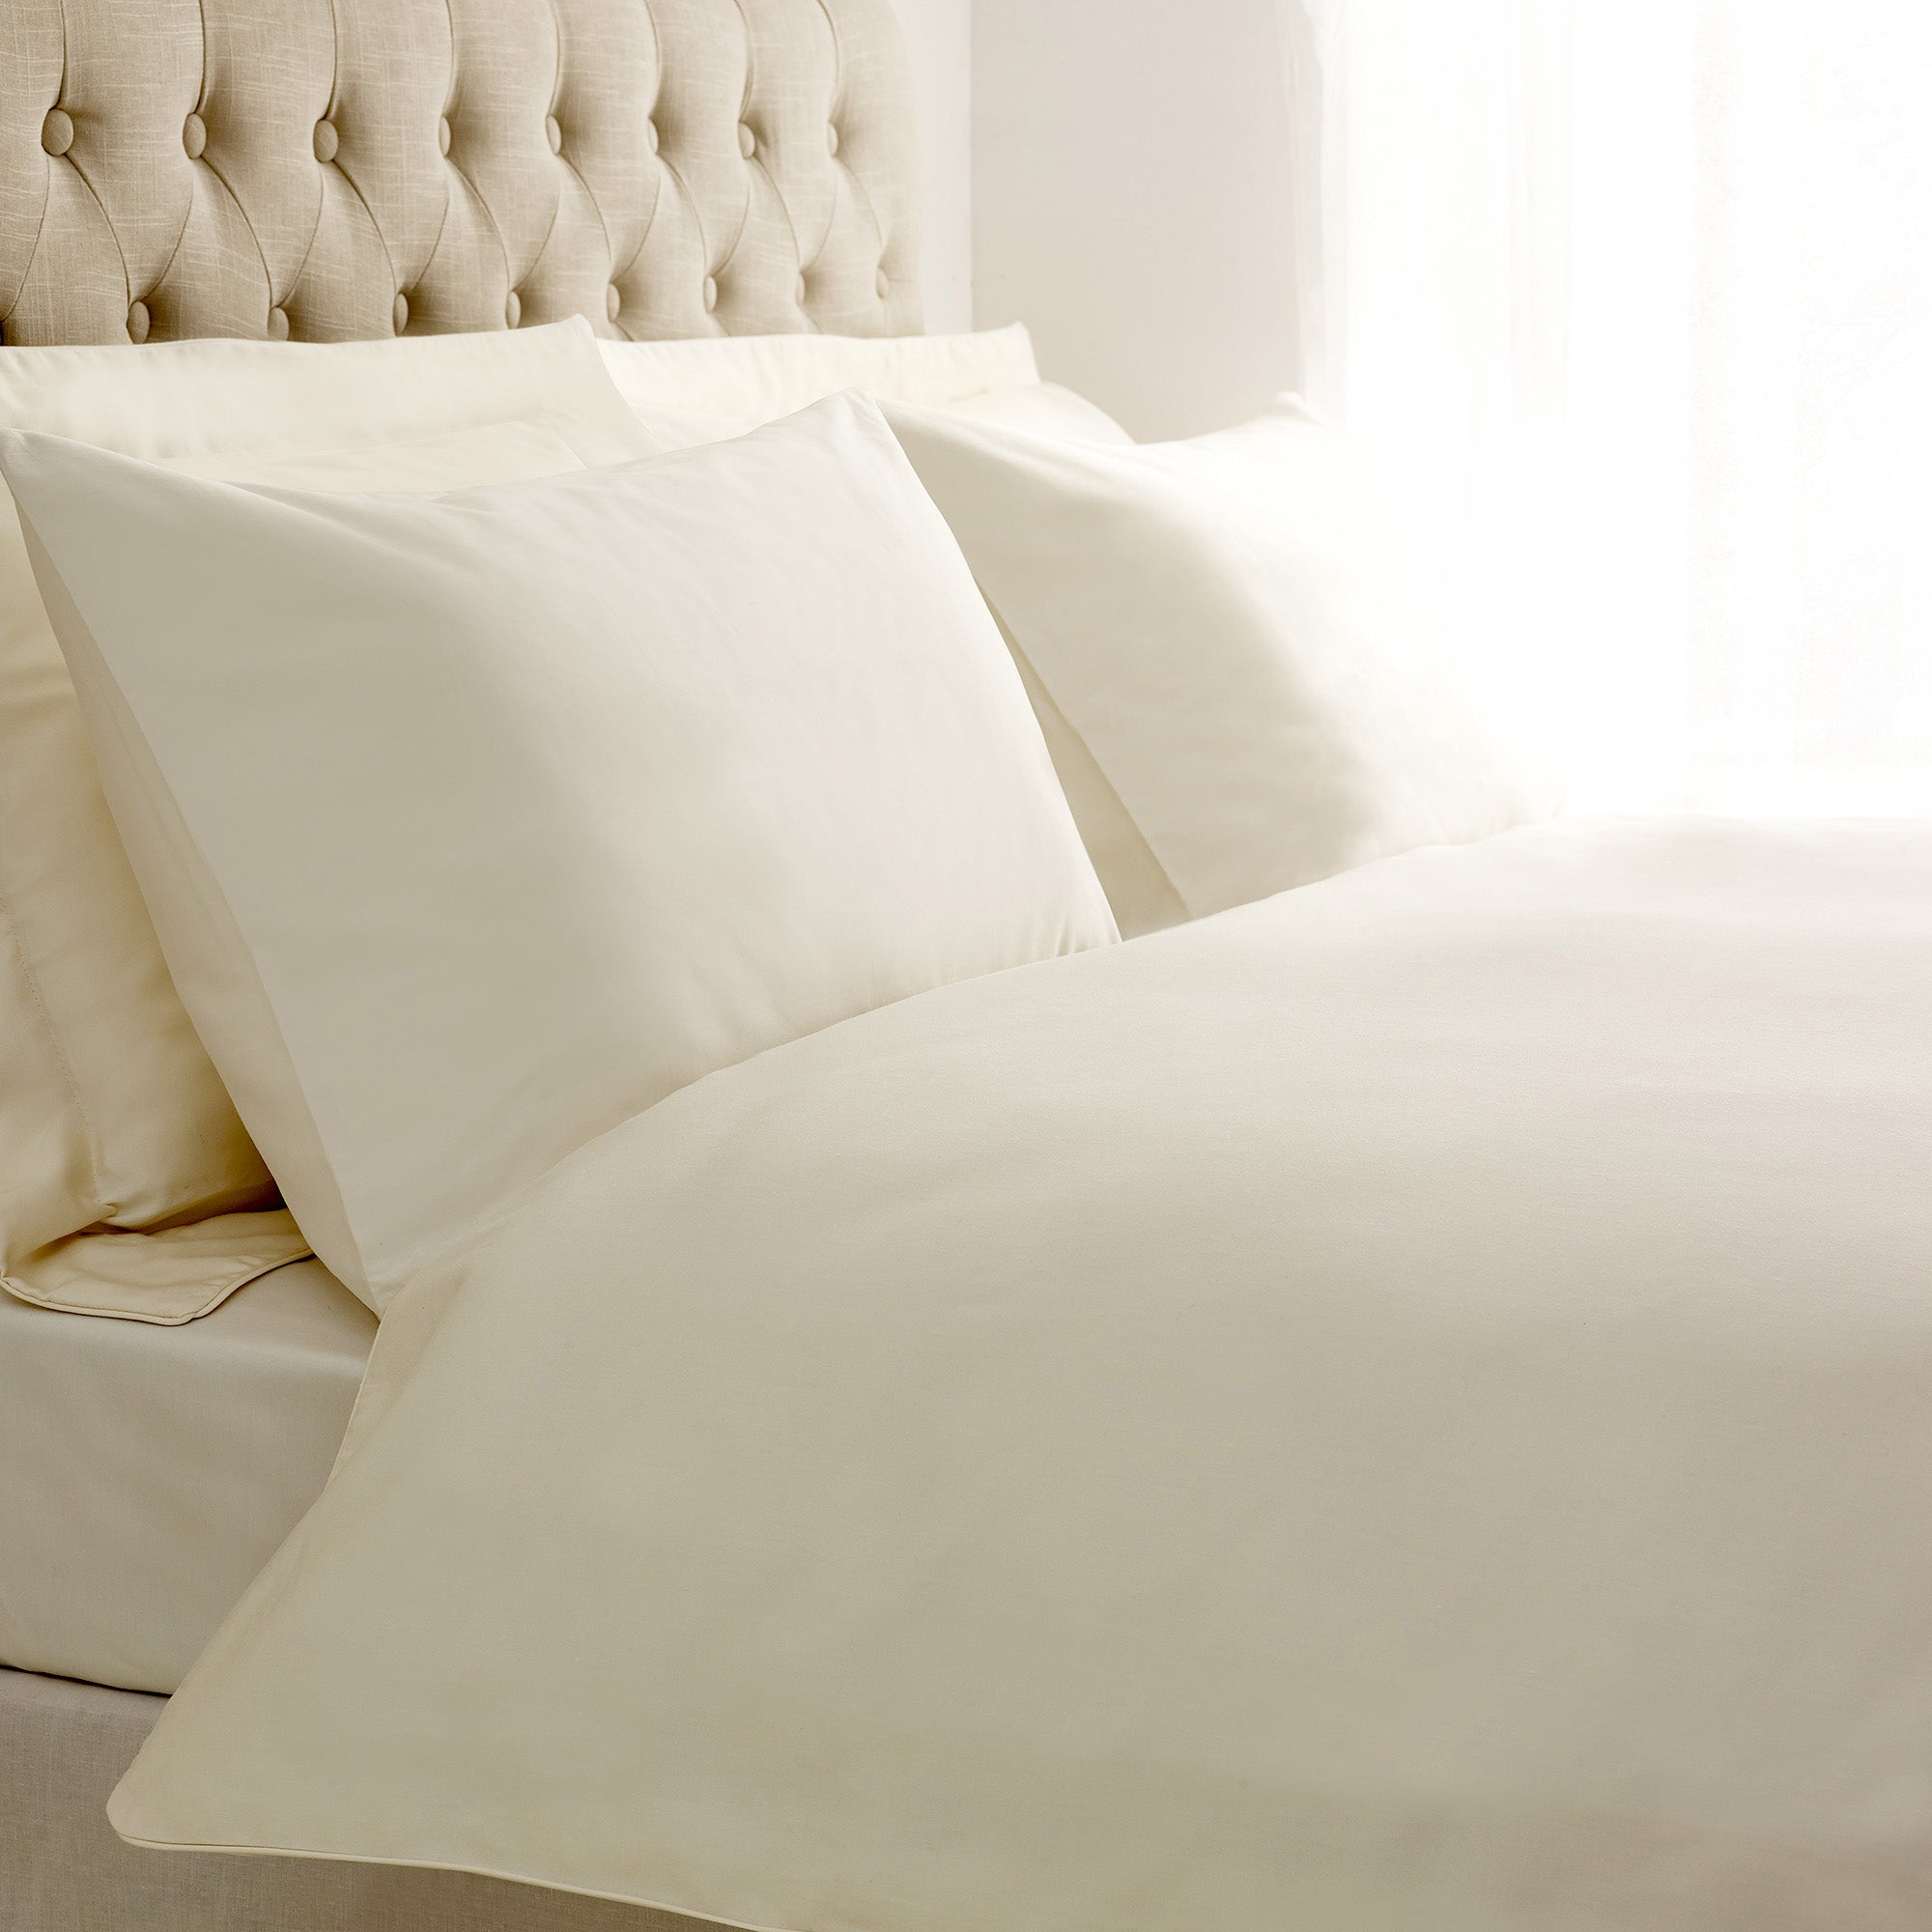 5A Fifth Avenue 400 Thread Count Plain Cream Bed Linen Collection